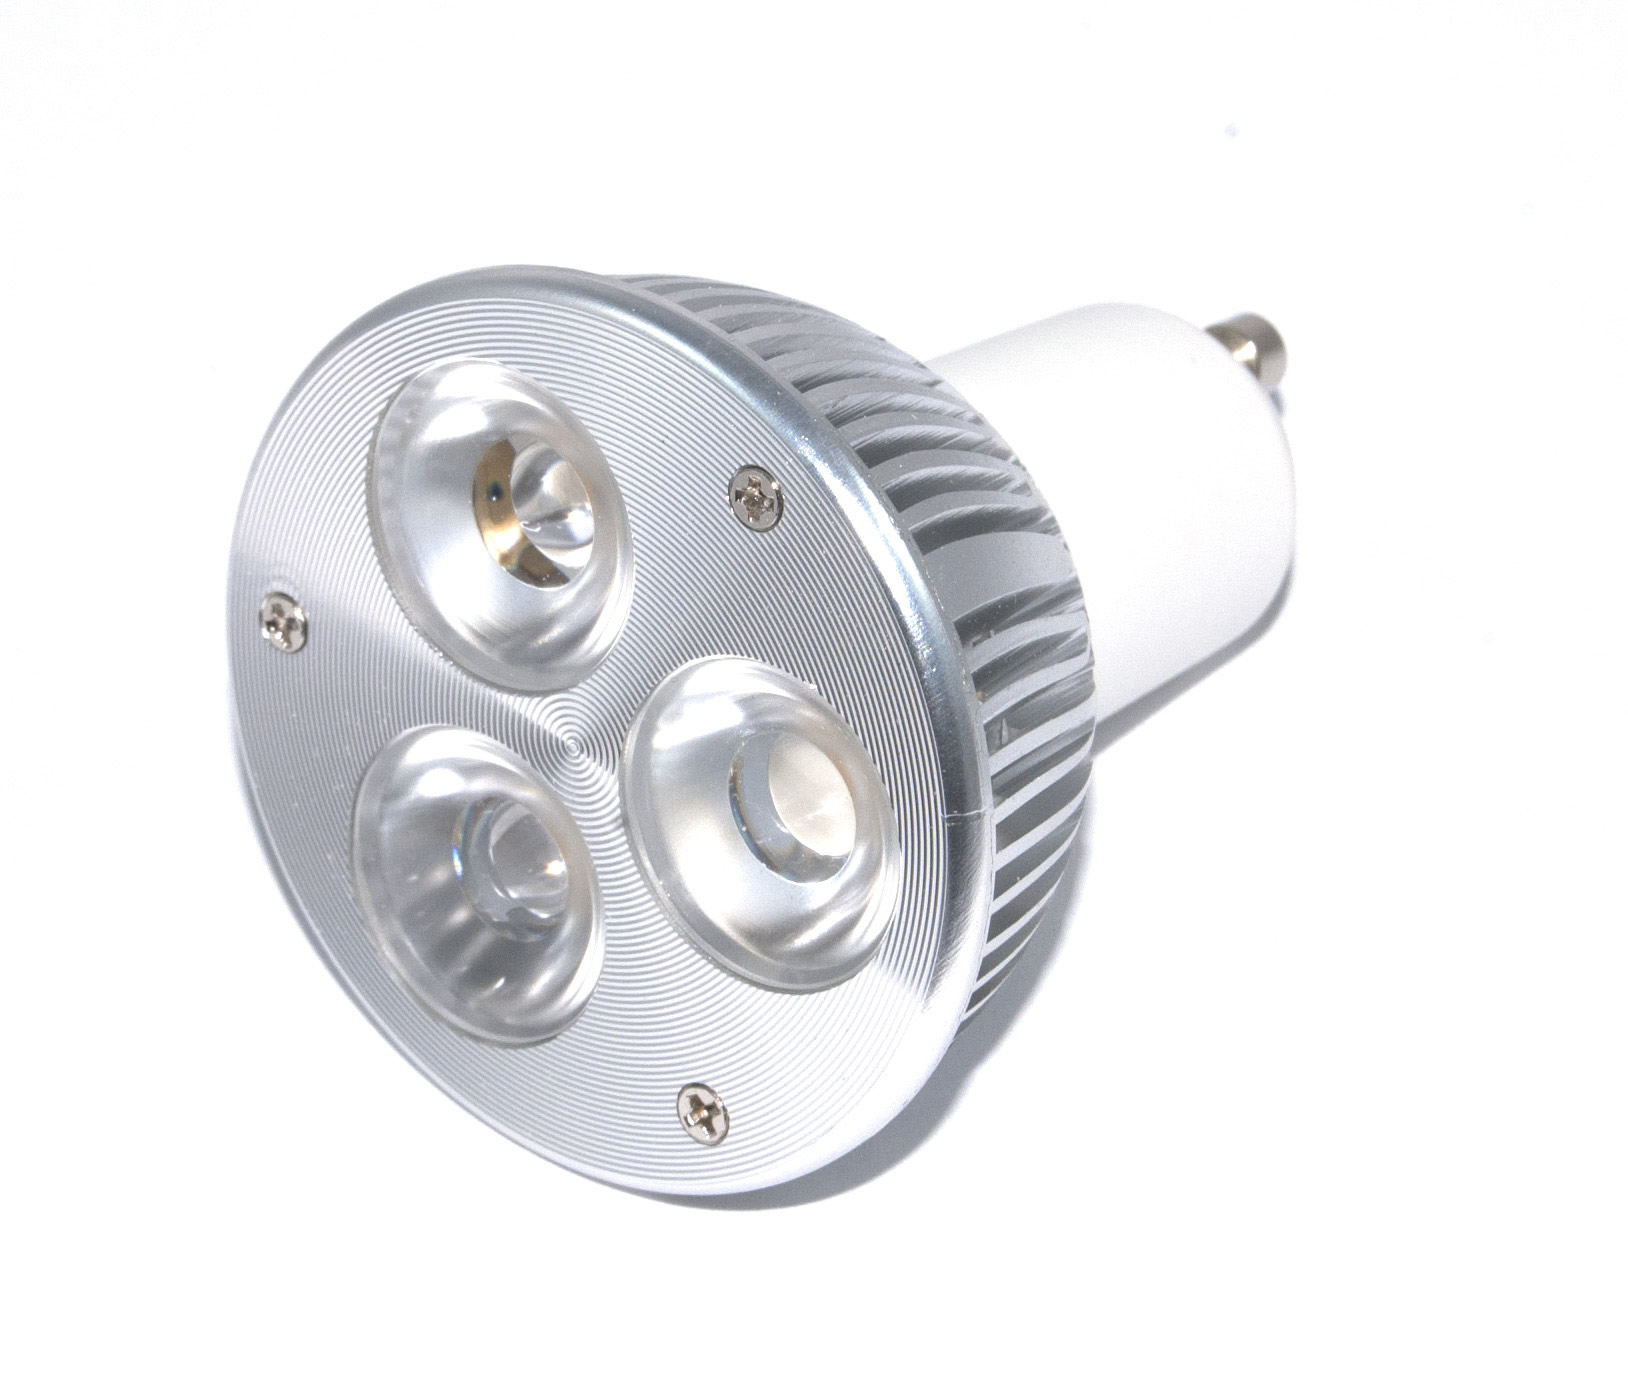 Lampen Led Spot Gu10 Powerled Cree Dimbare 3x2w Power Led Spot 6 Watt Warm Wit